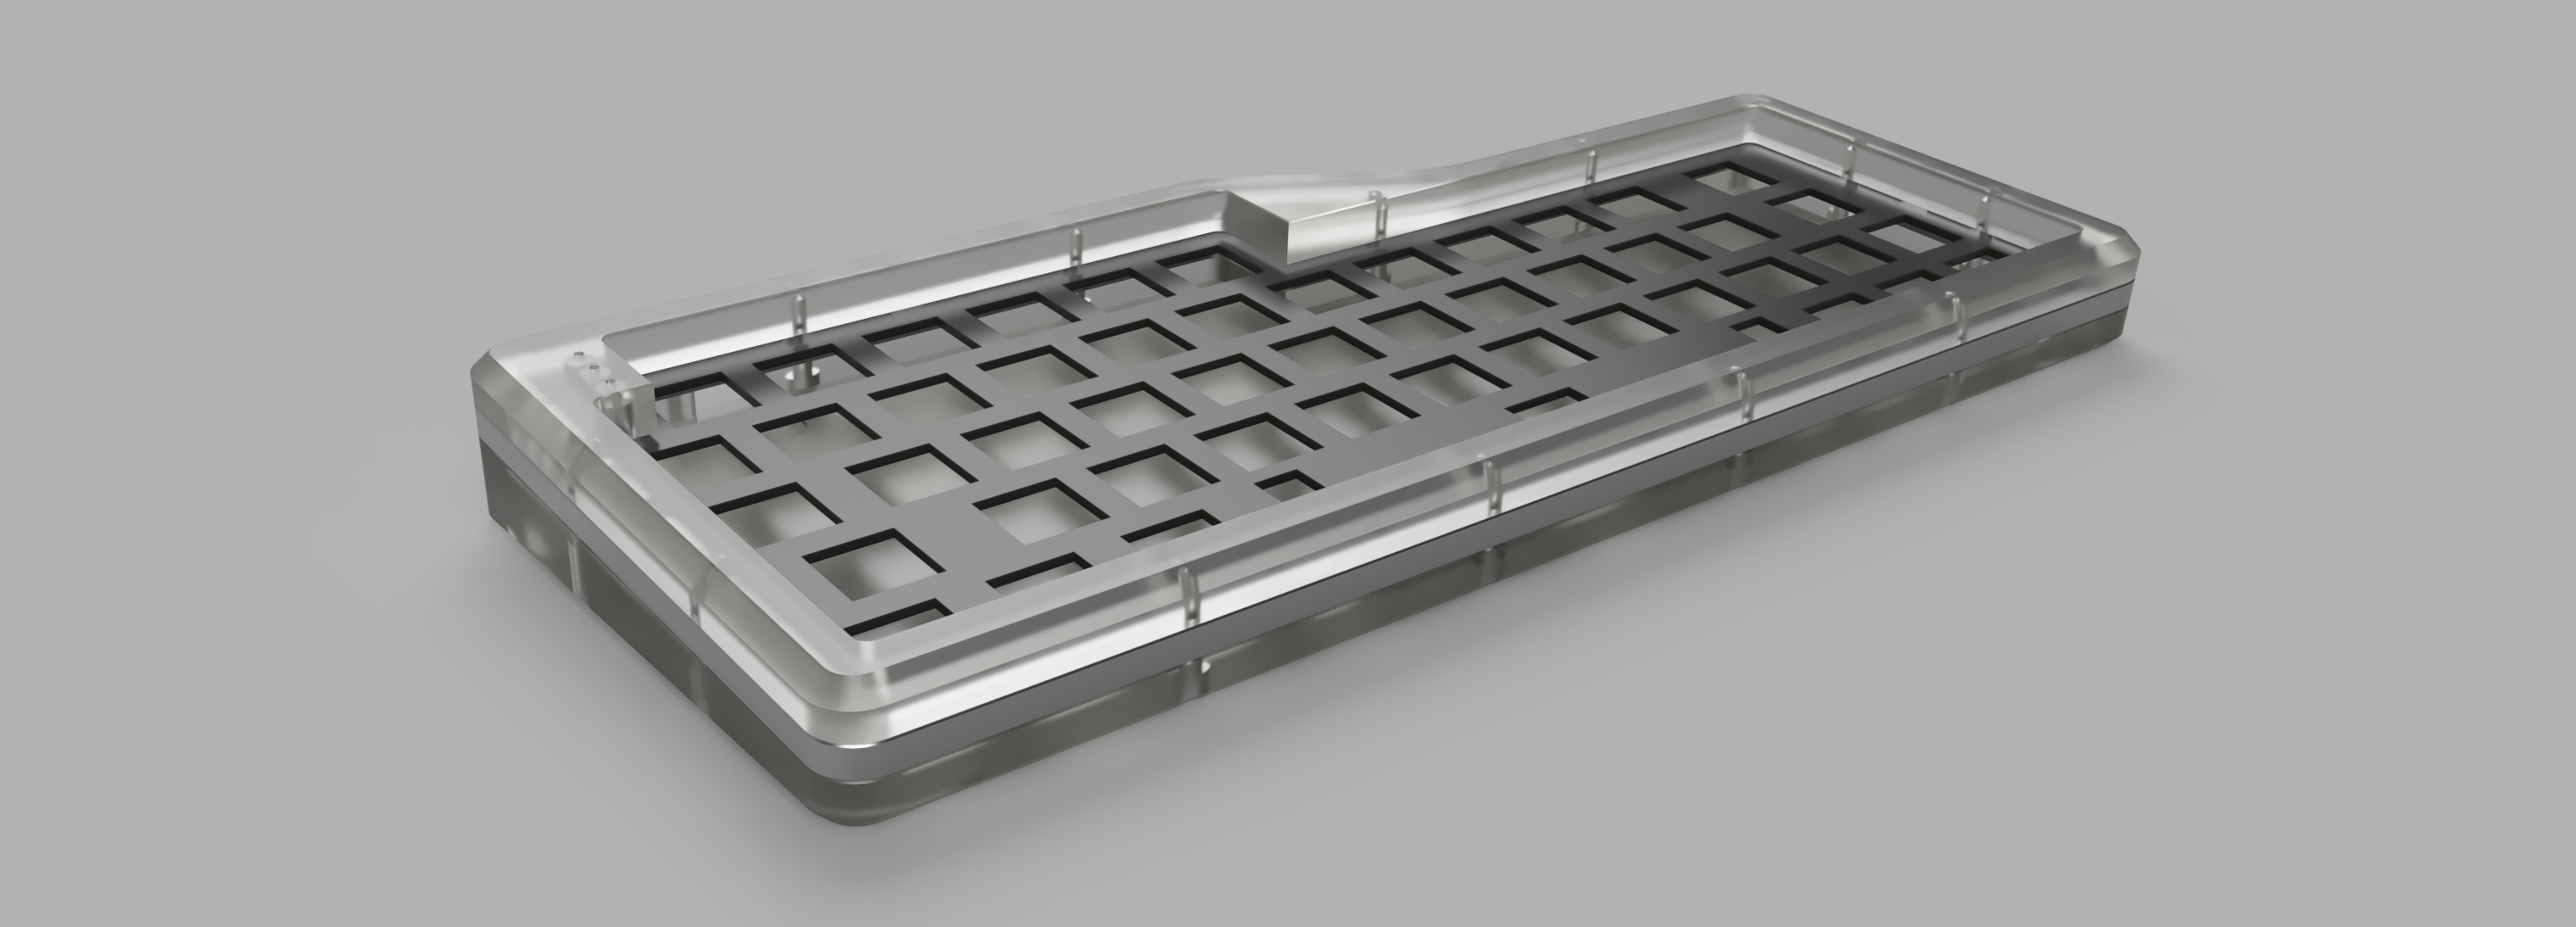 Render of a milled acrylic V4N4G0N R4 case with stainless steel middle layer